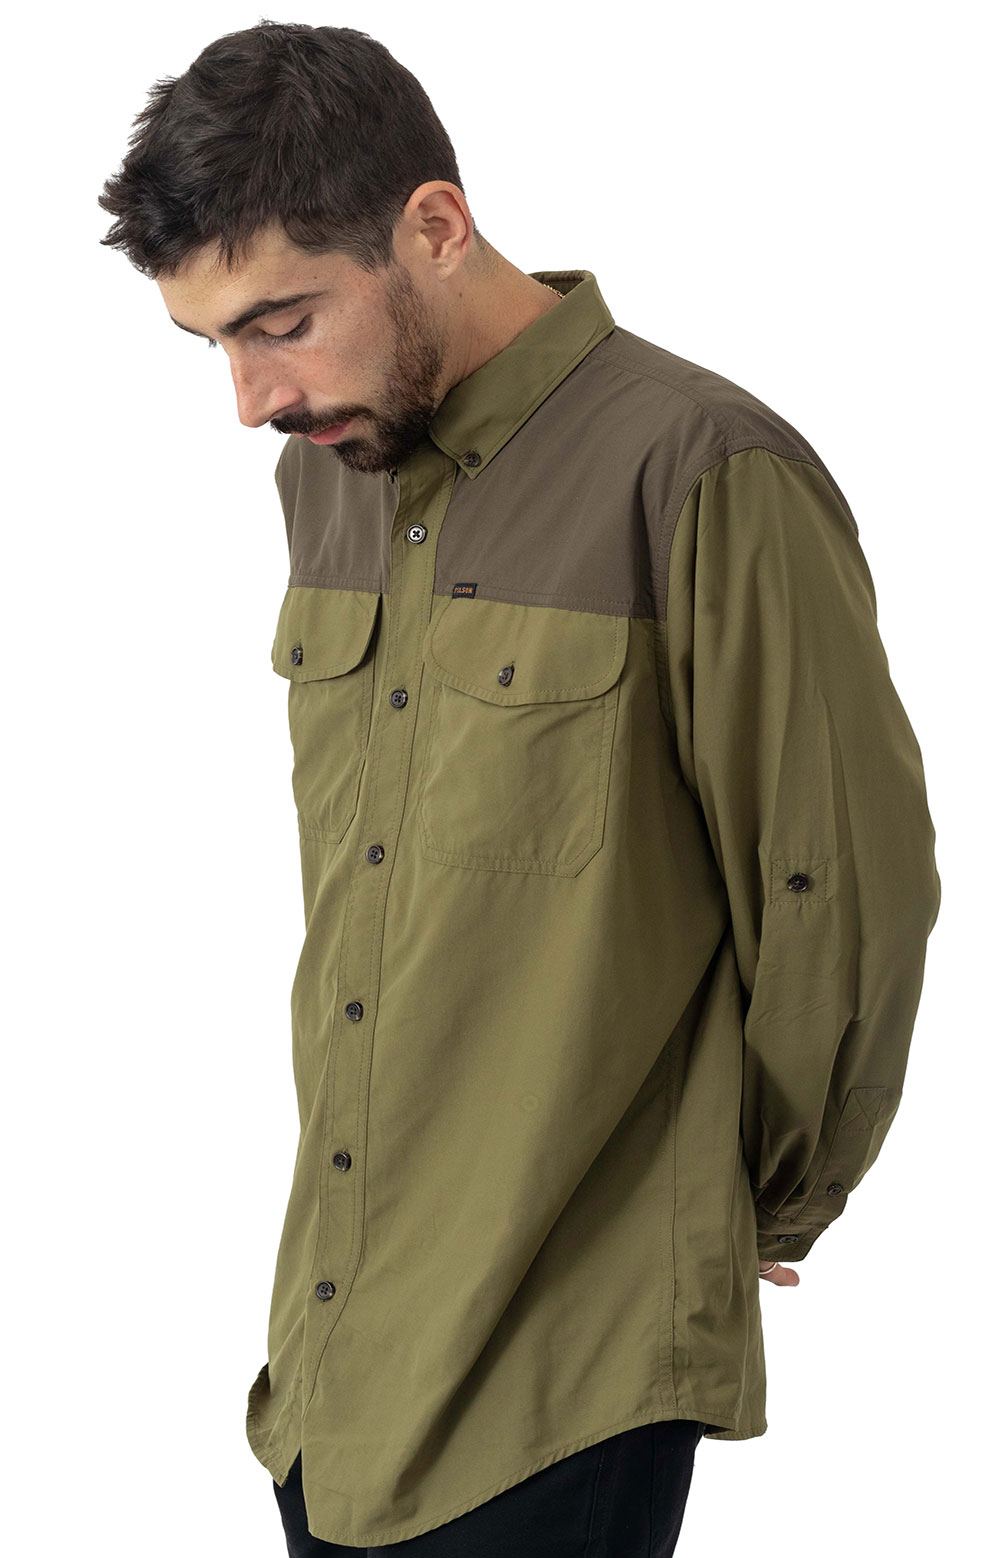 Sportsman's Button-Up Shirt - Olived Drab